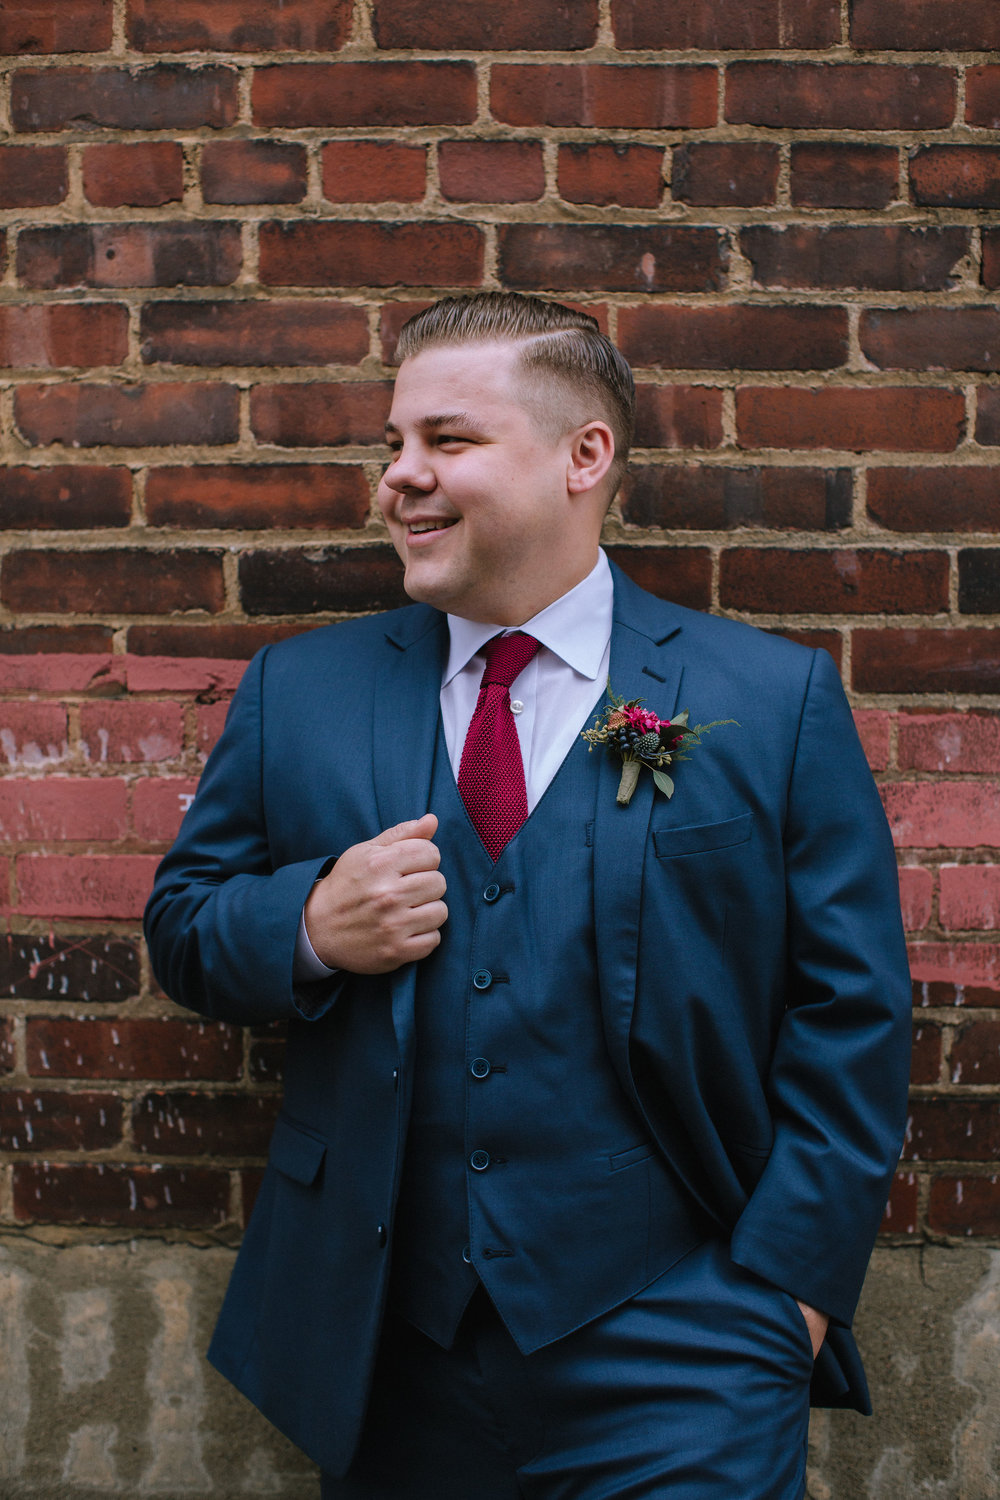 Groom poses in modern navy tuxedo with red tie for modern Pittsburgh wedding at Studio Slate planned by Exhale Events. Find more wedding inspiration at exhale-events.com!